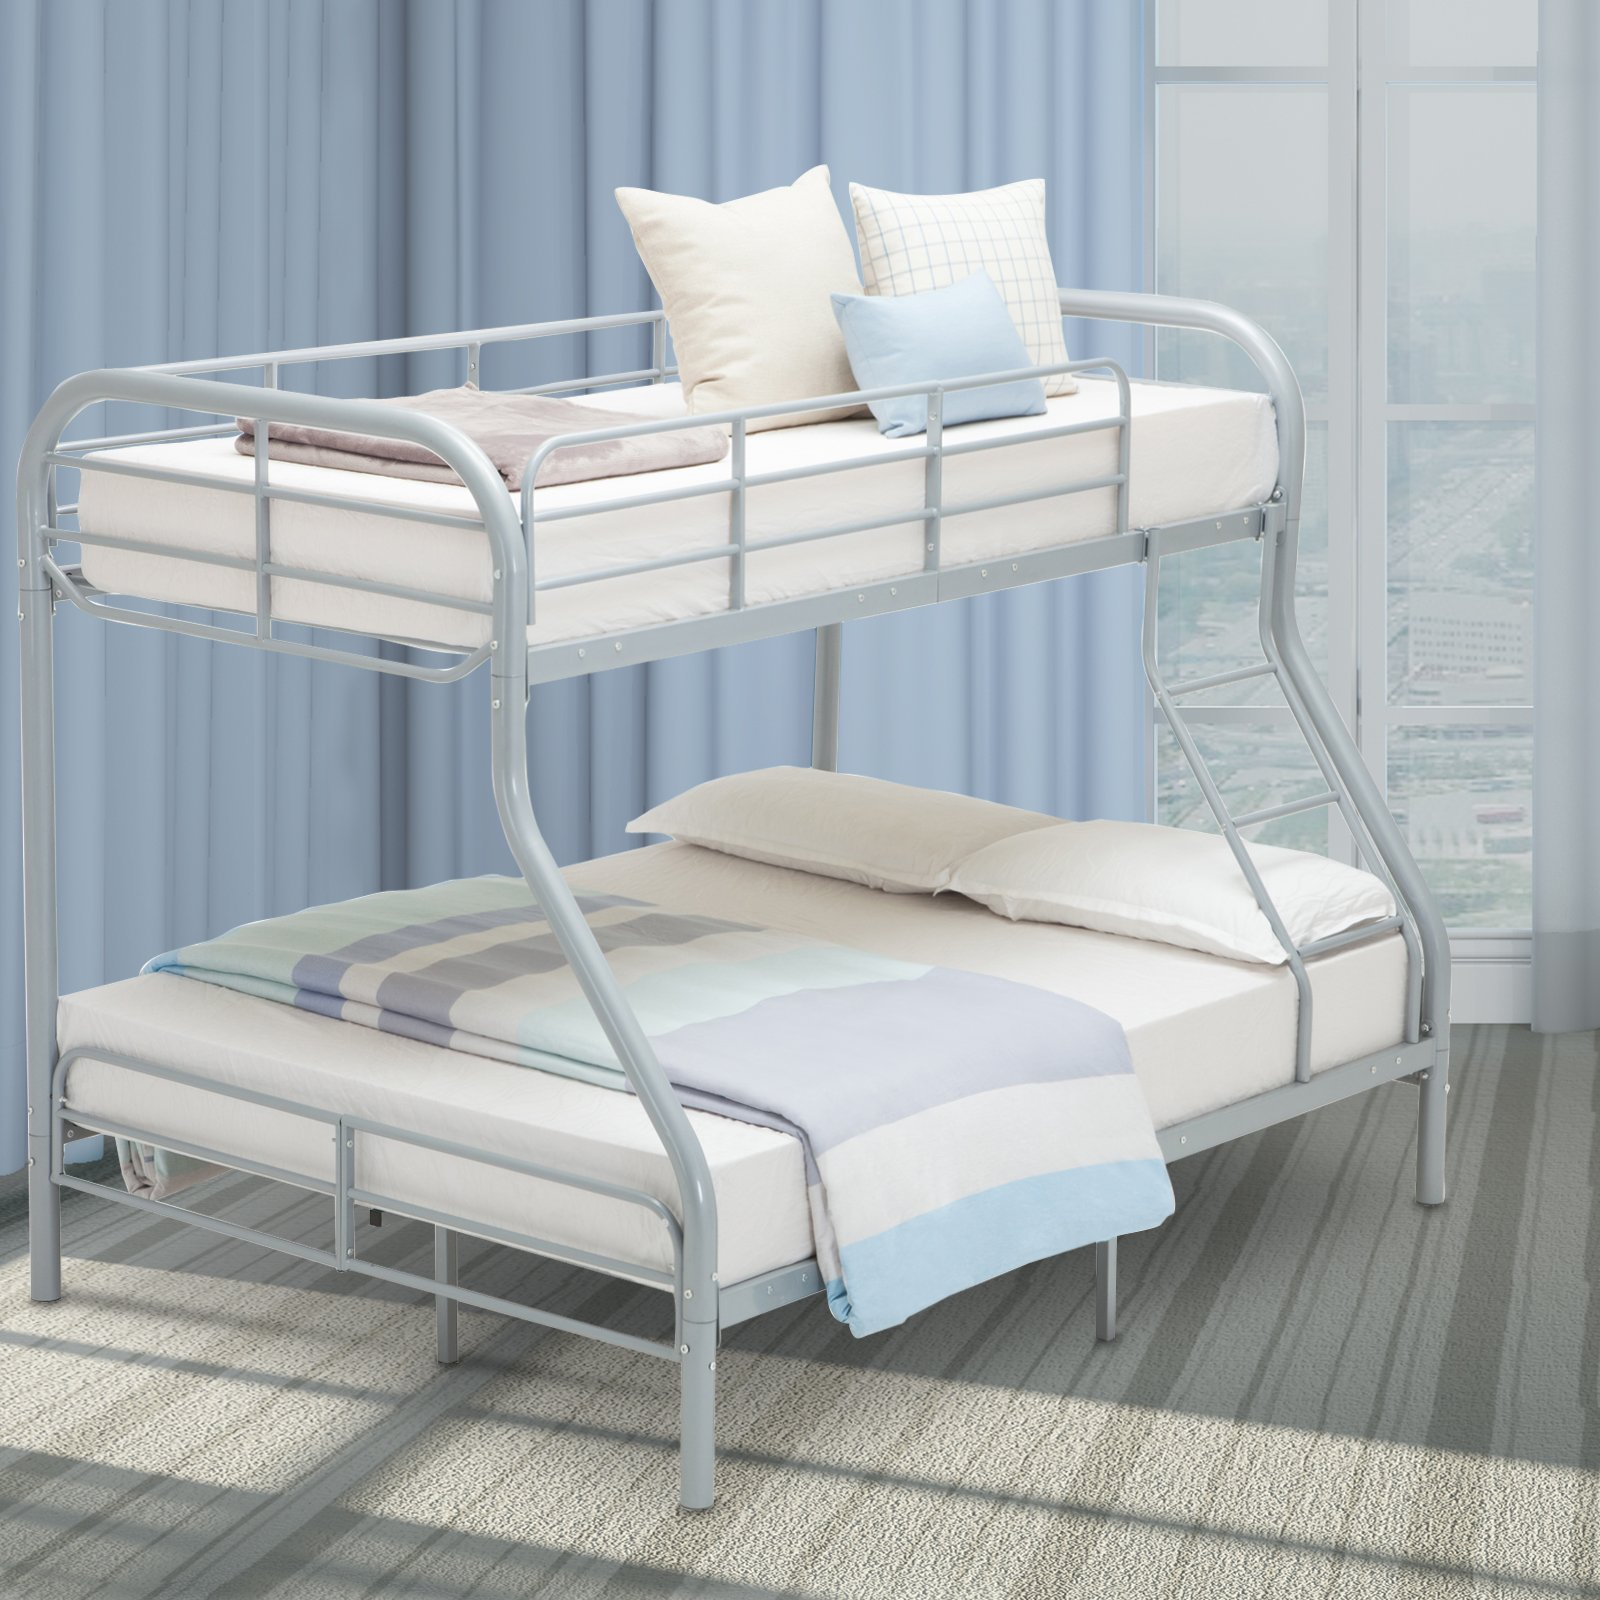 LAGRIMA Twin Over Full Metal Sturdy Bunk Bed Frame, with Inclined Ladder, Safety Rails for Kids Teens Adult, Space-Saving Design - Silver